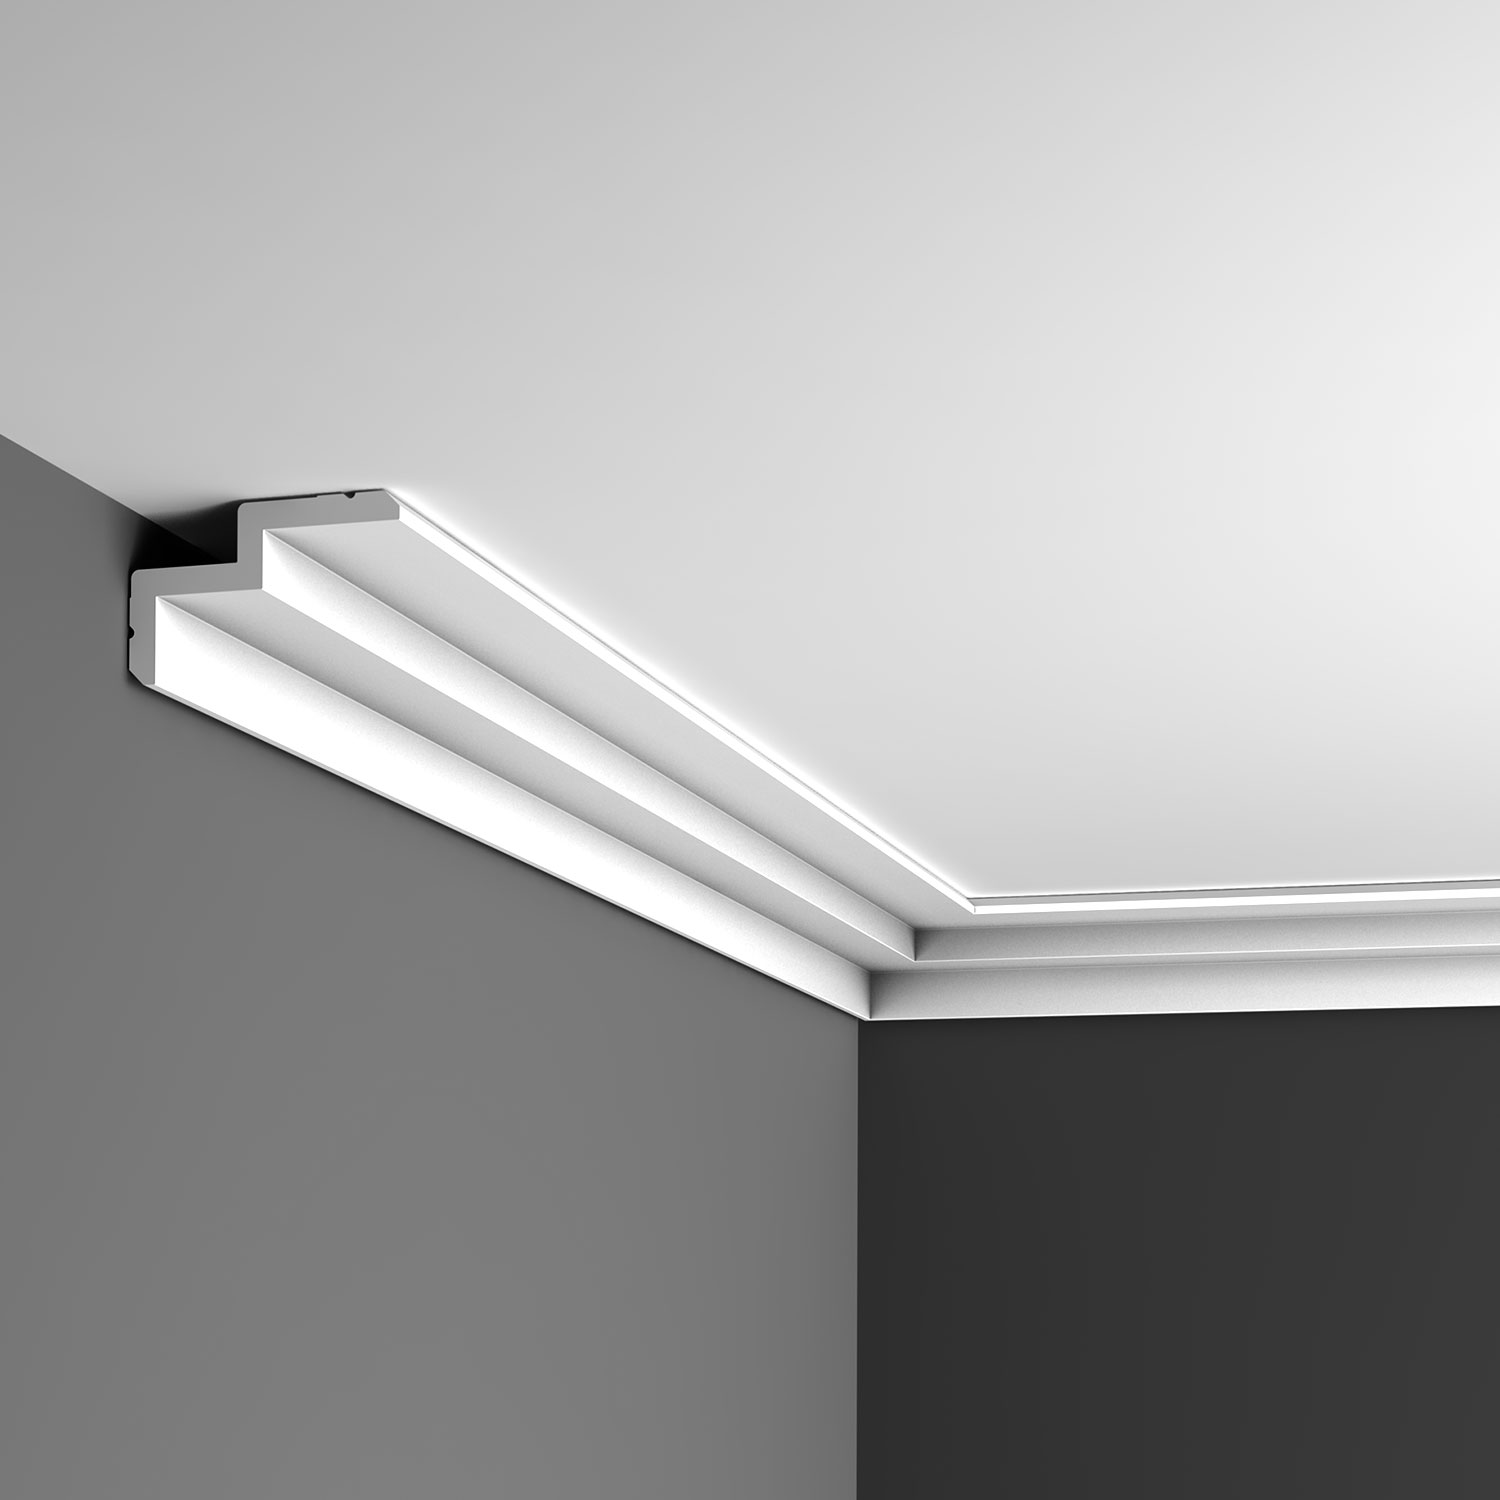 Crown Moulding. Crown Moulding Cornice Molding and Coving by Orac Decor USA